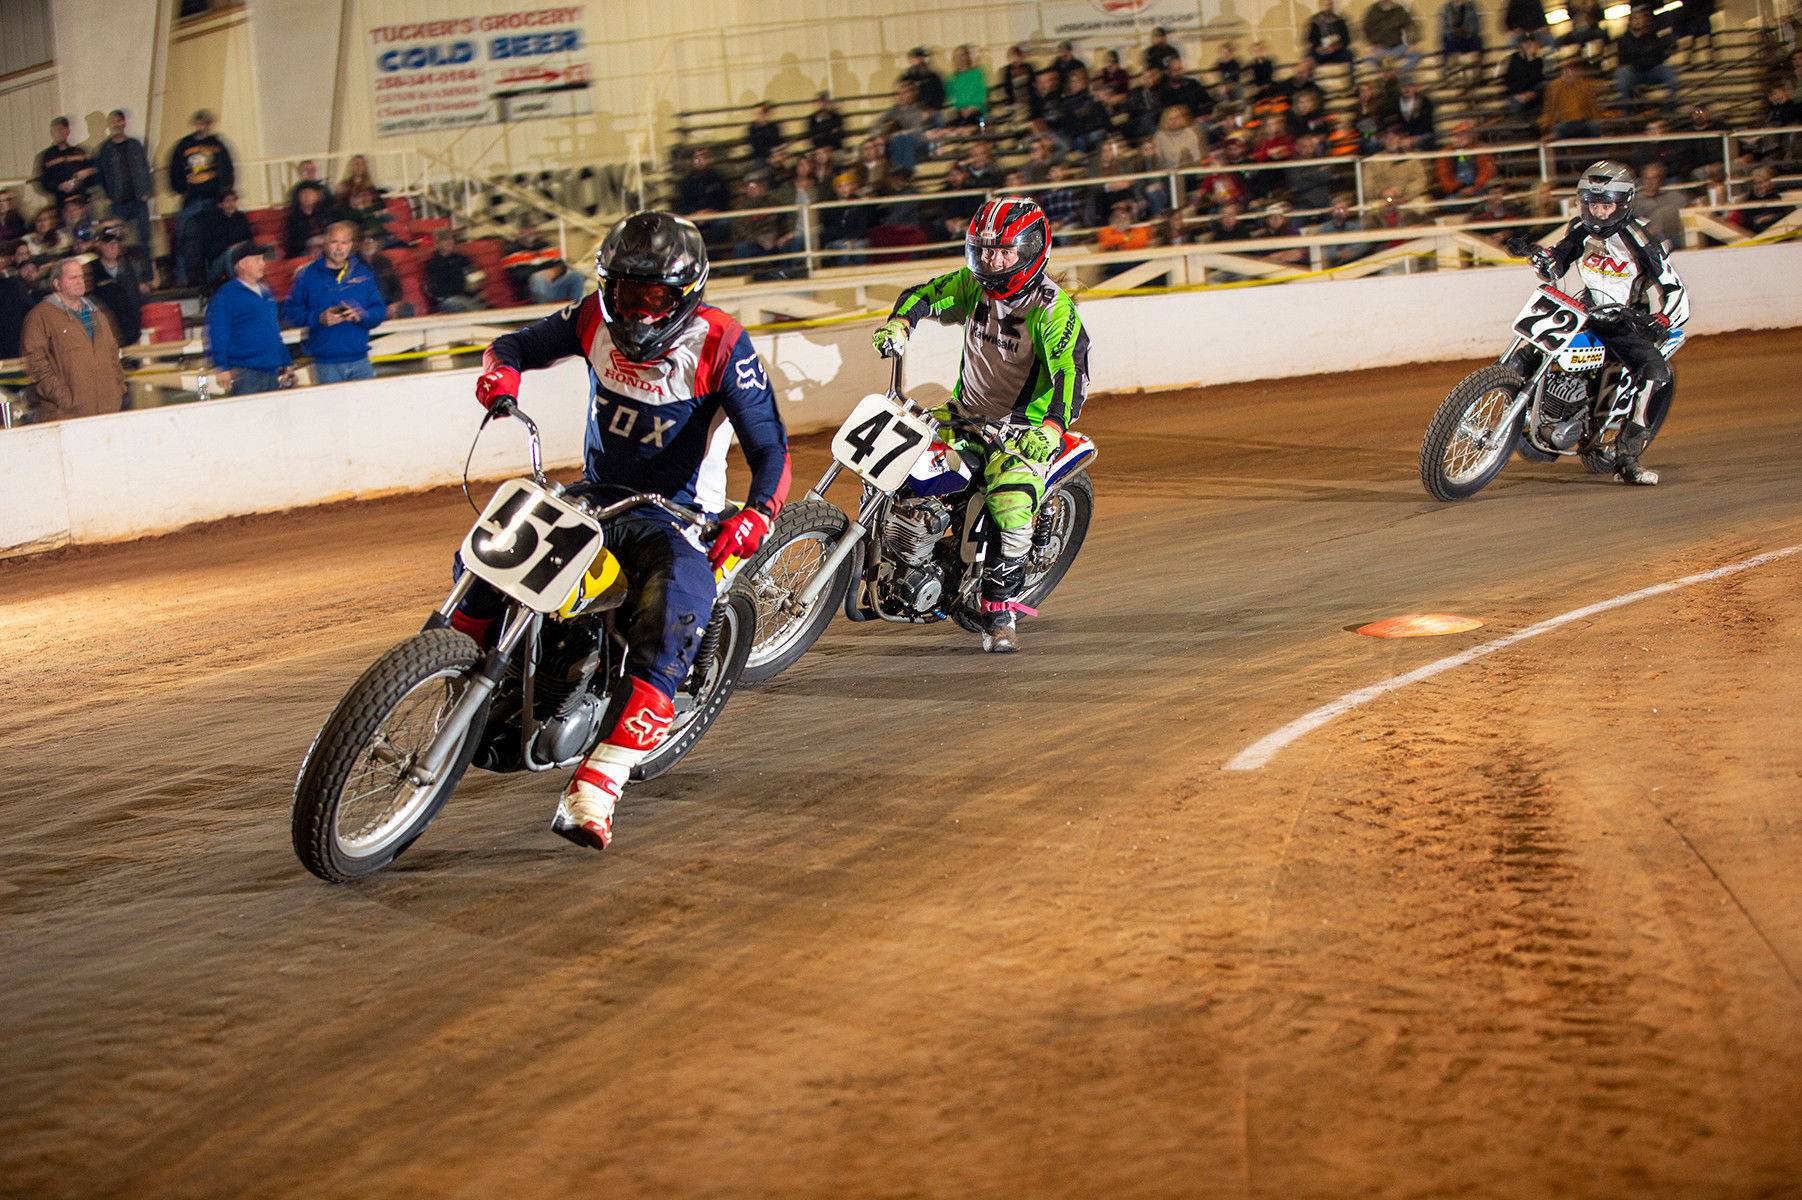 AHRMA dirt track racers in action at the Celebration Arena, in Priceville, Alabama. Photo by Kevin McIntosh, courtesy AHRMA.